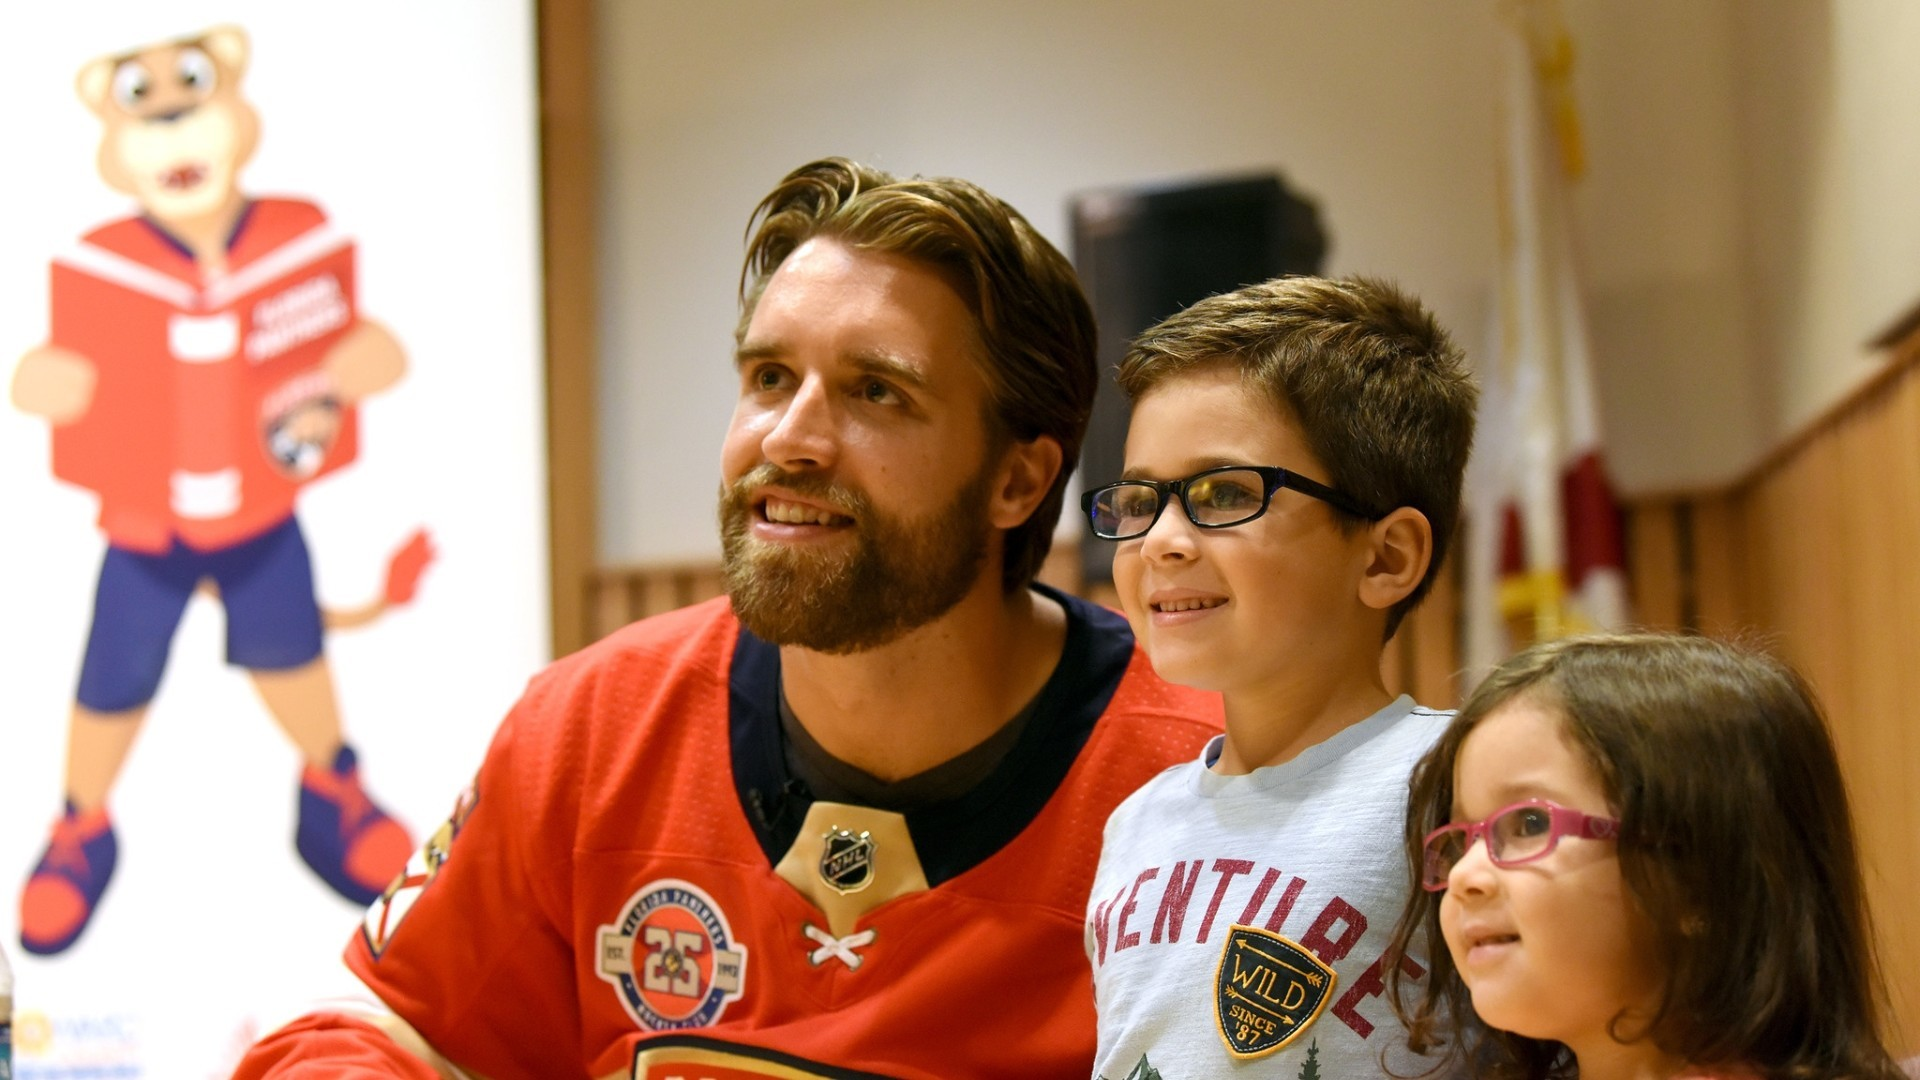 Fl-sp-ekblad-panthers-summer-reading-tour-video-20180718